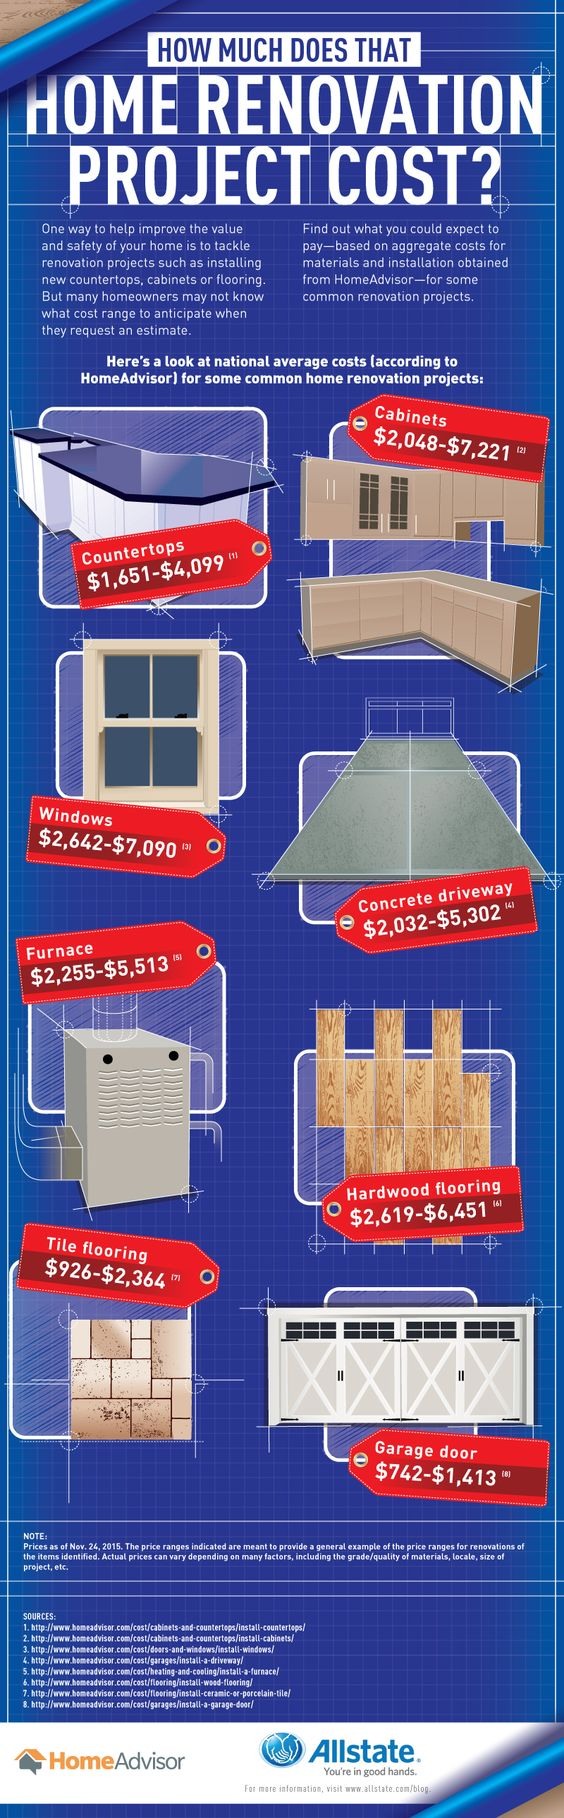 How Much Does That Home Renovation Project Cost | Infographic and ...